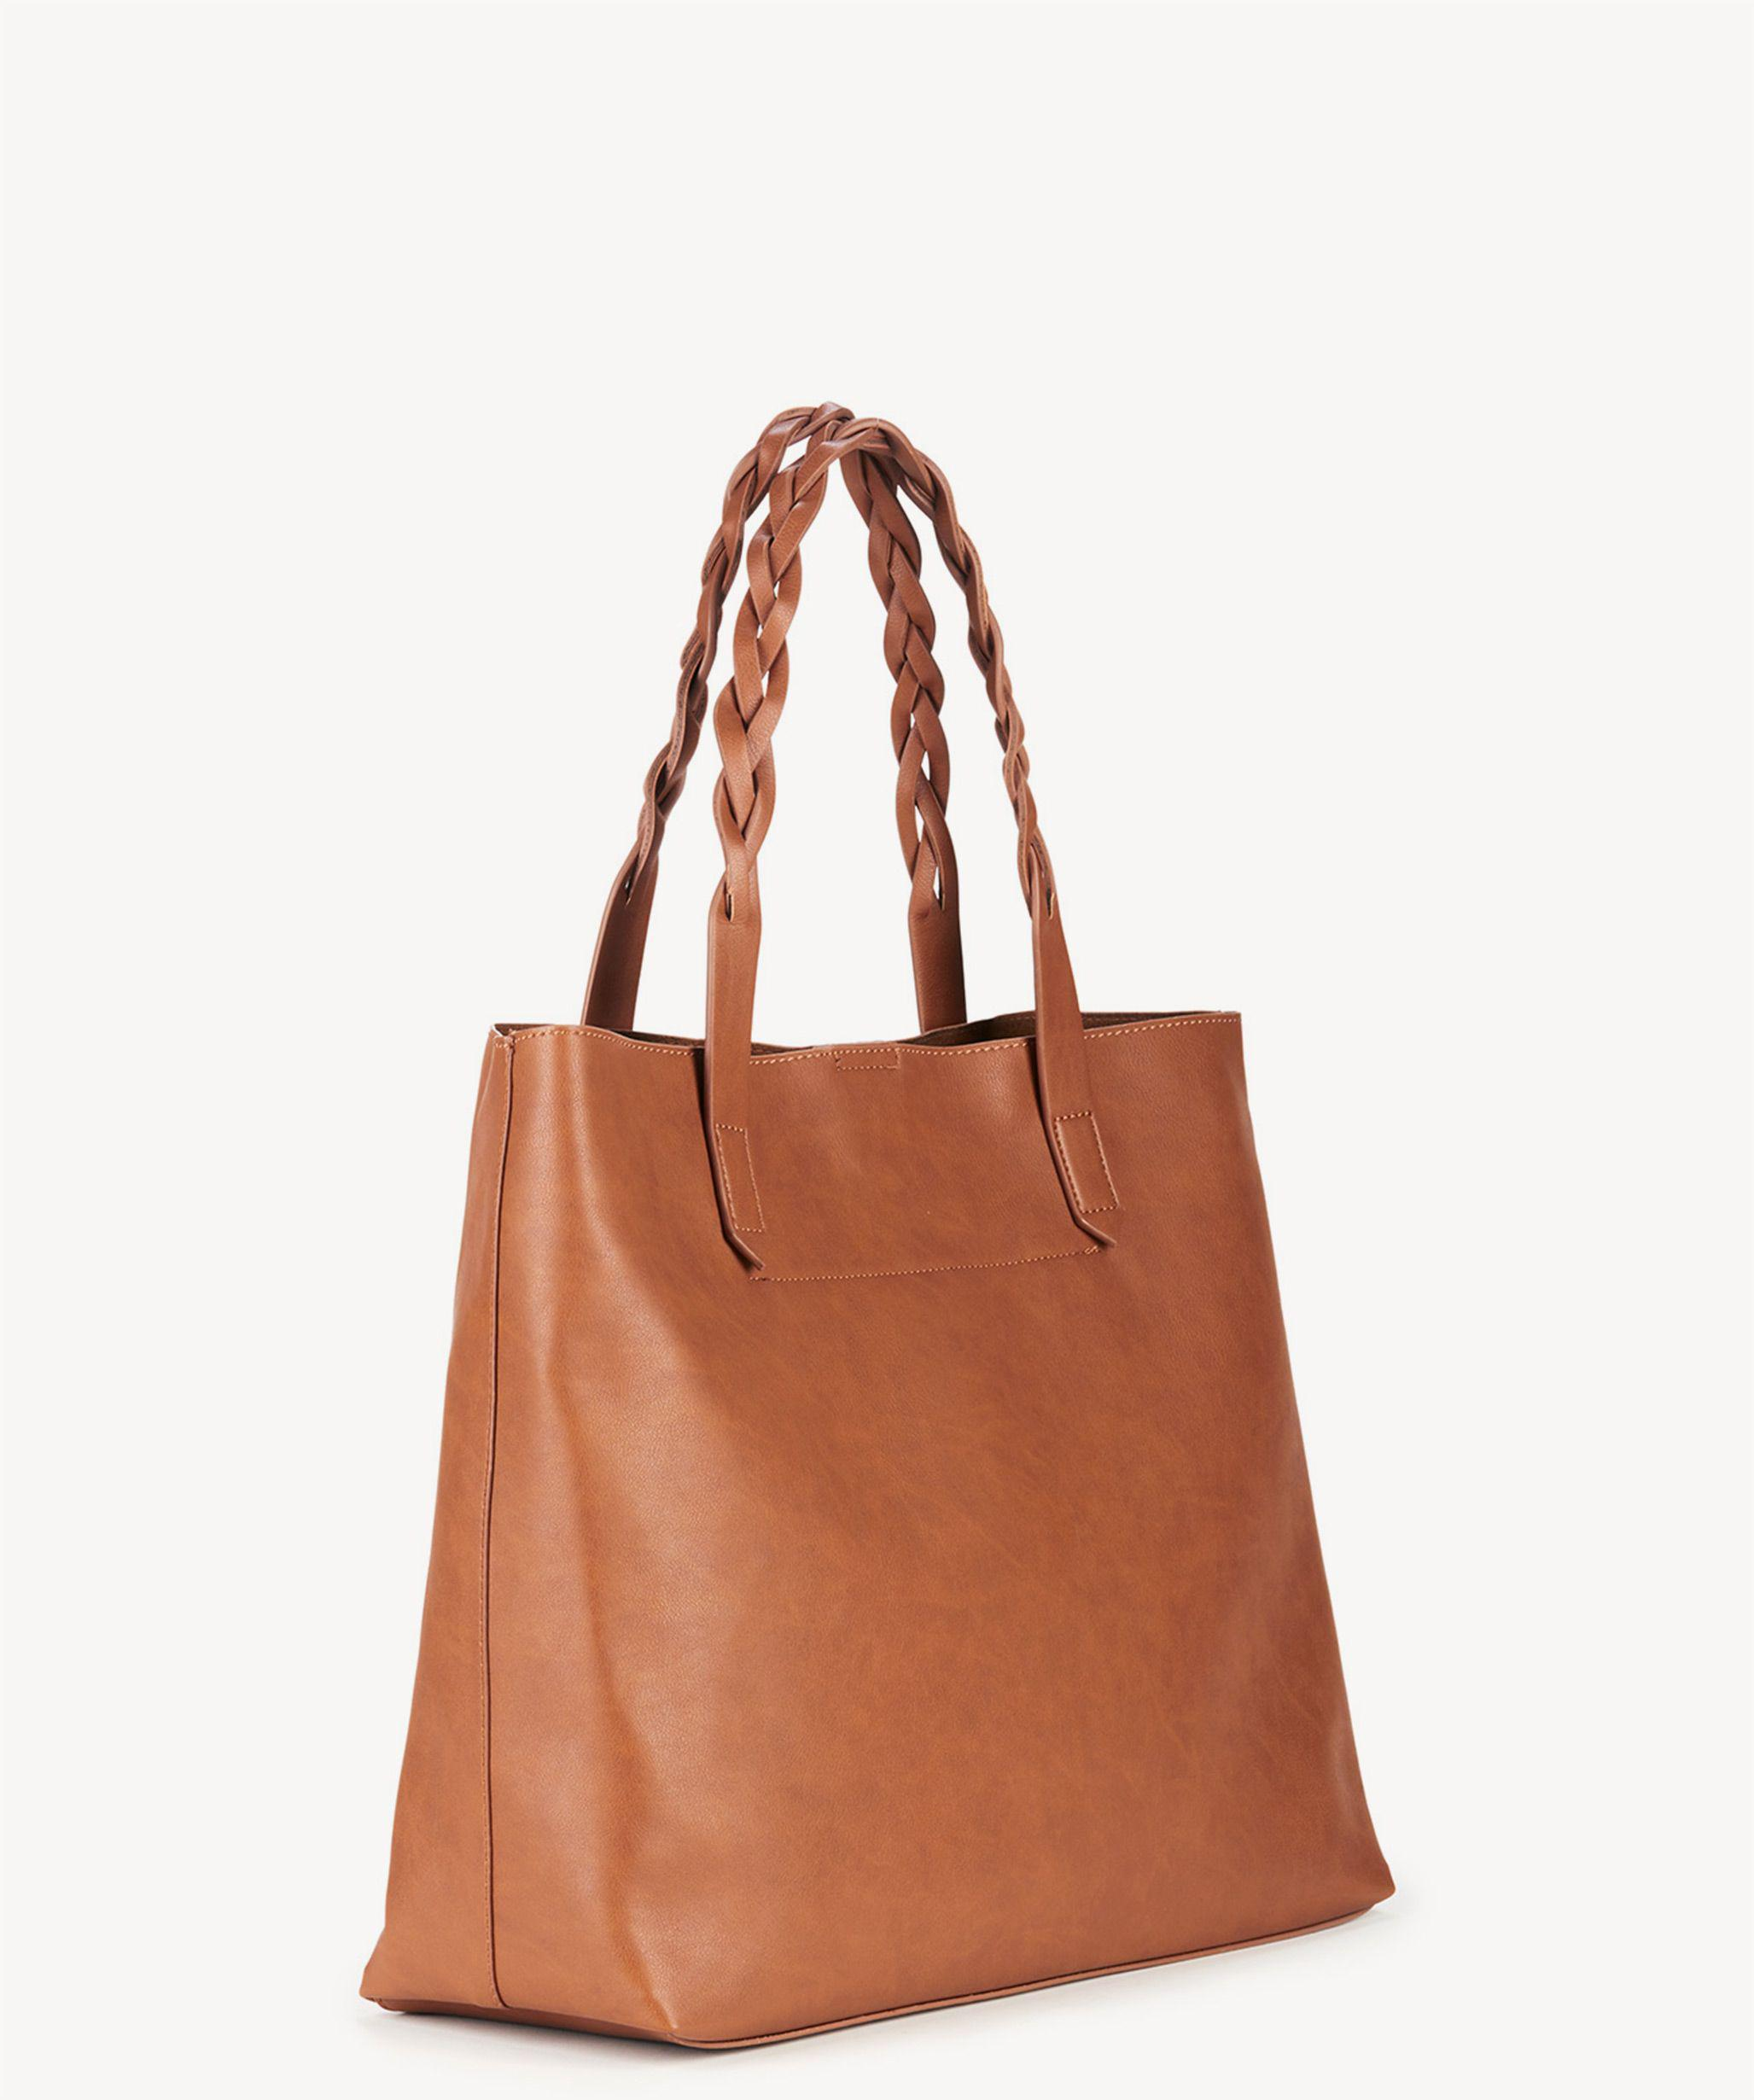 a706cdffd91c Lyst - Sole Society Amal Tote W  Braided Handles in Brown